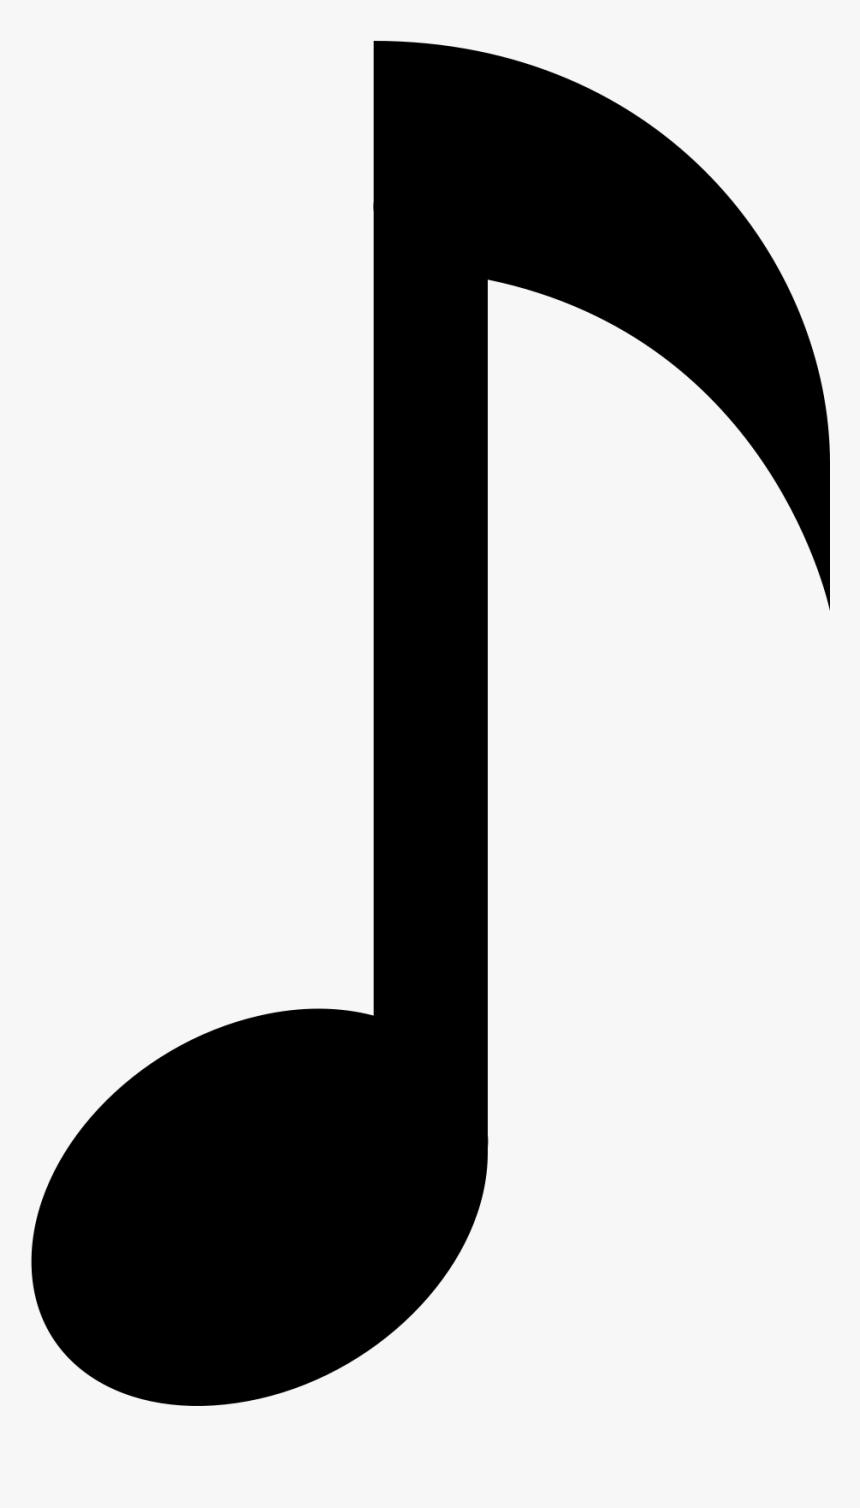 Music Png Icon : music, Musical, Notes, Music, Icon,, Download, Transparent, Image, PNGitem